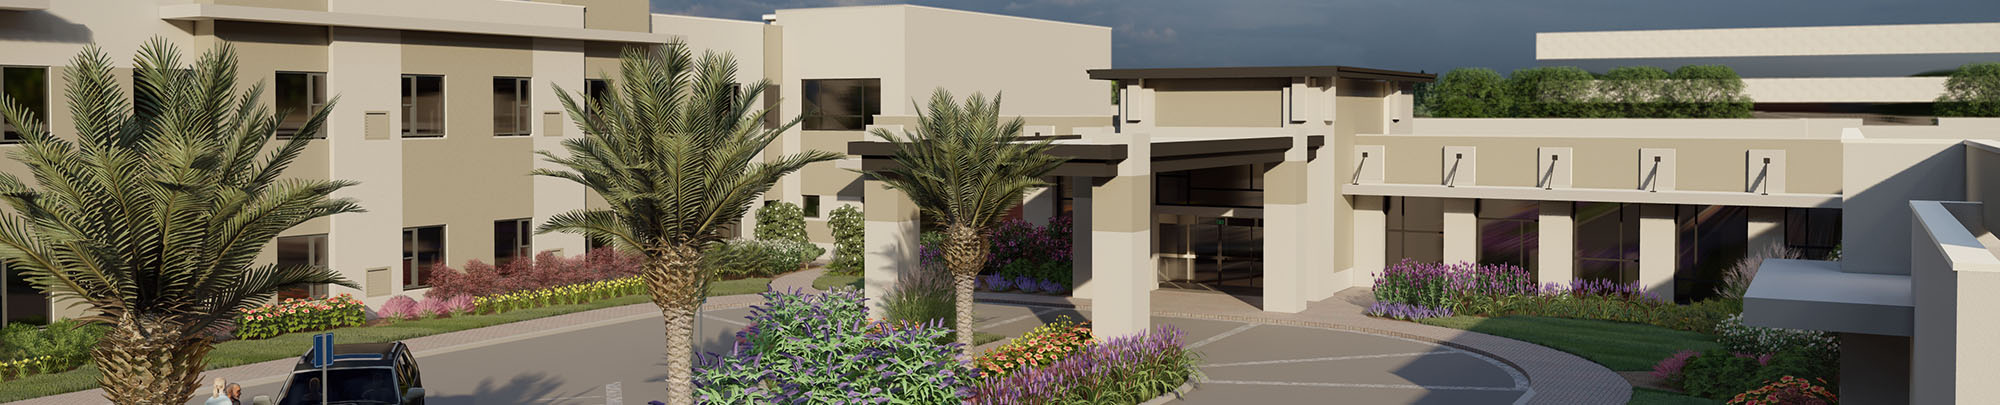 New Assisted Living Memory Care Health Center Expansion Village on the Green